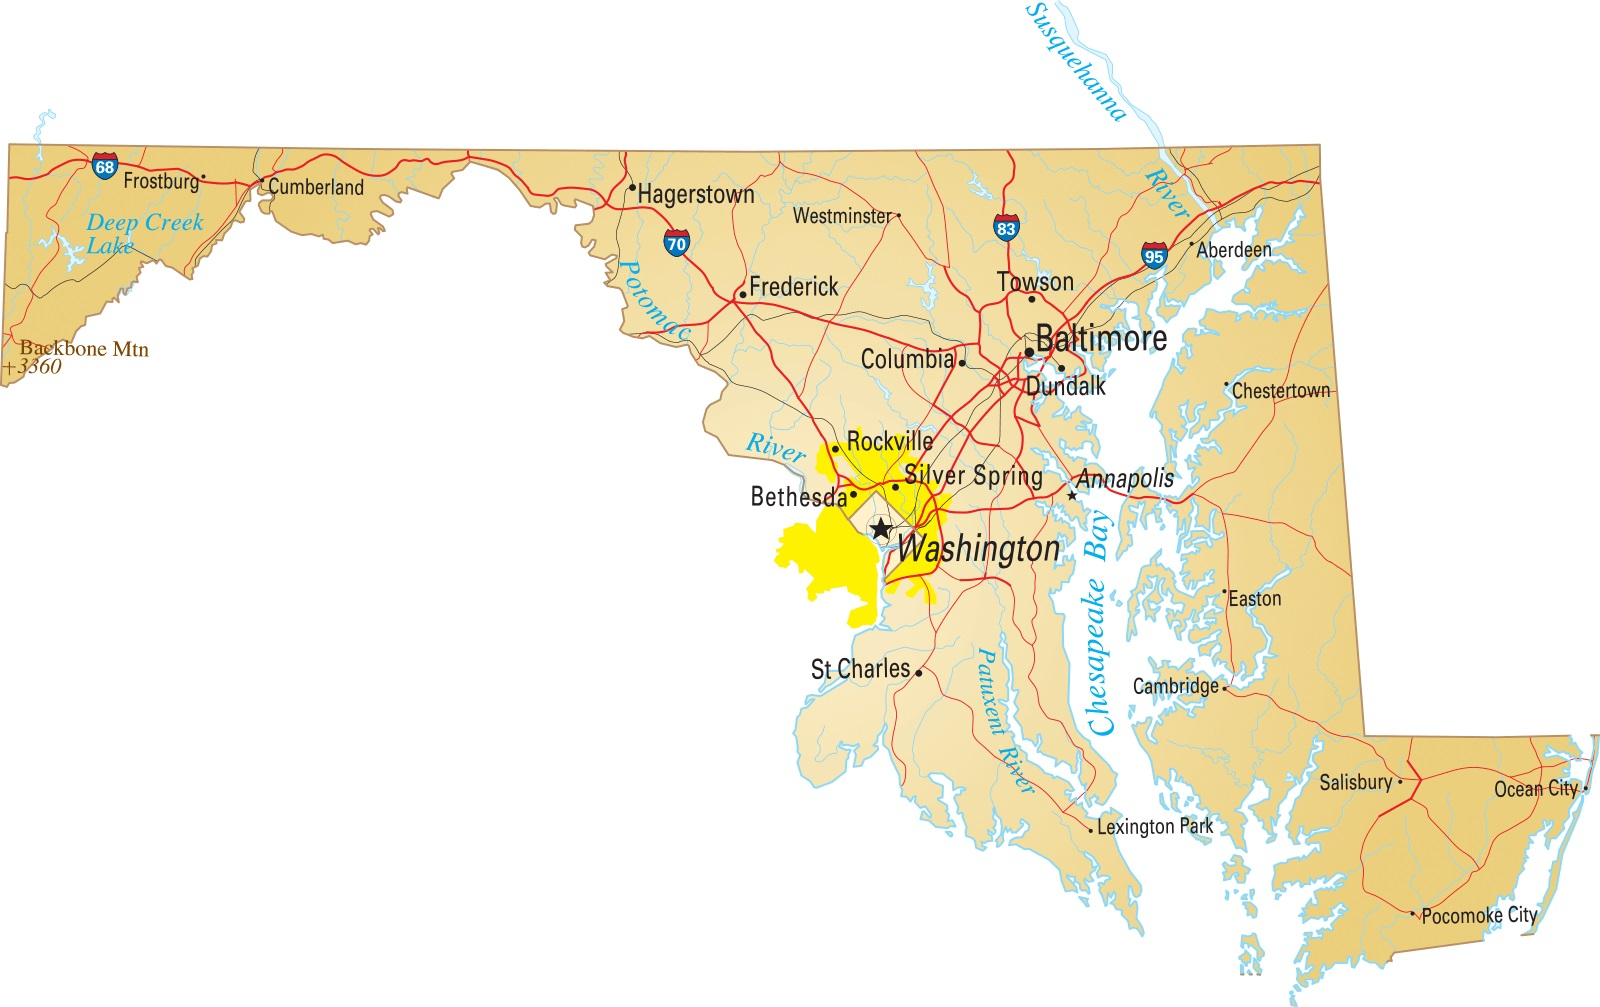 Map of Maryland | Political, County, Geography, Transportation, And Cities Map